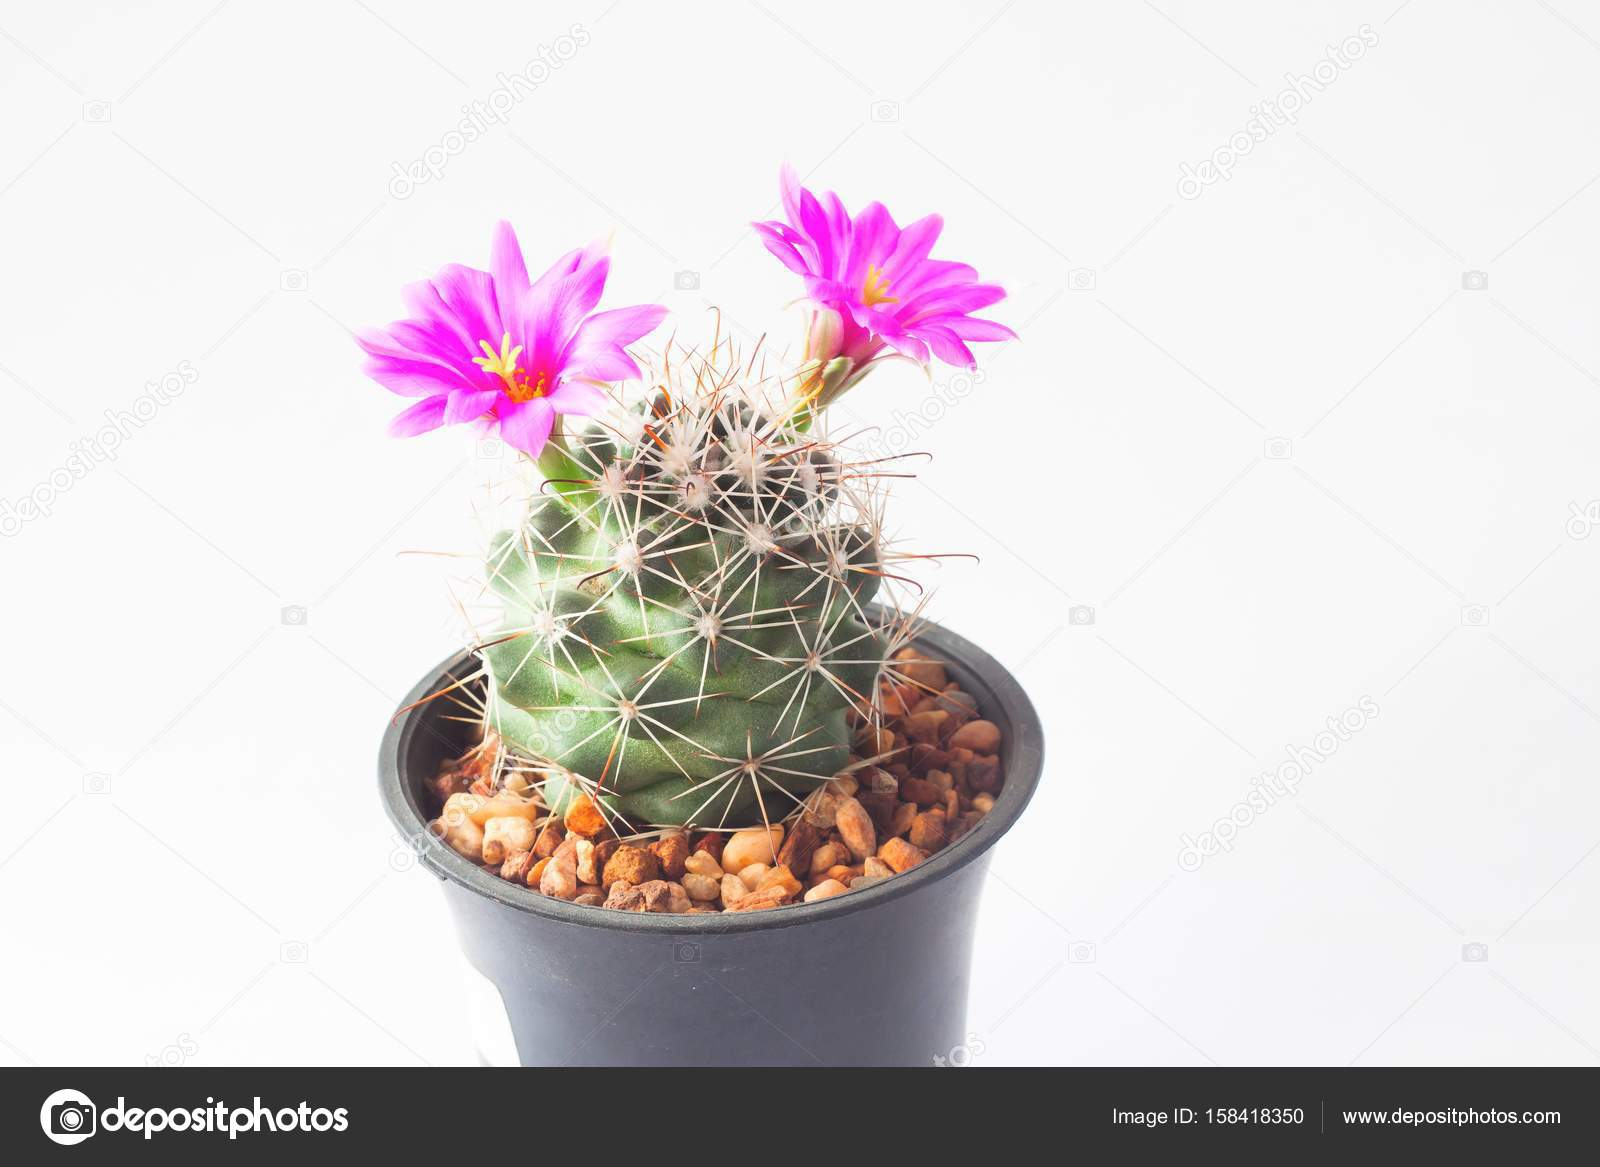 Cactus with pink flowers on white background stock photo cactus with pink flowers on white background photo by schantalao mightylinksfo